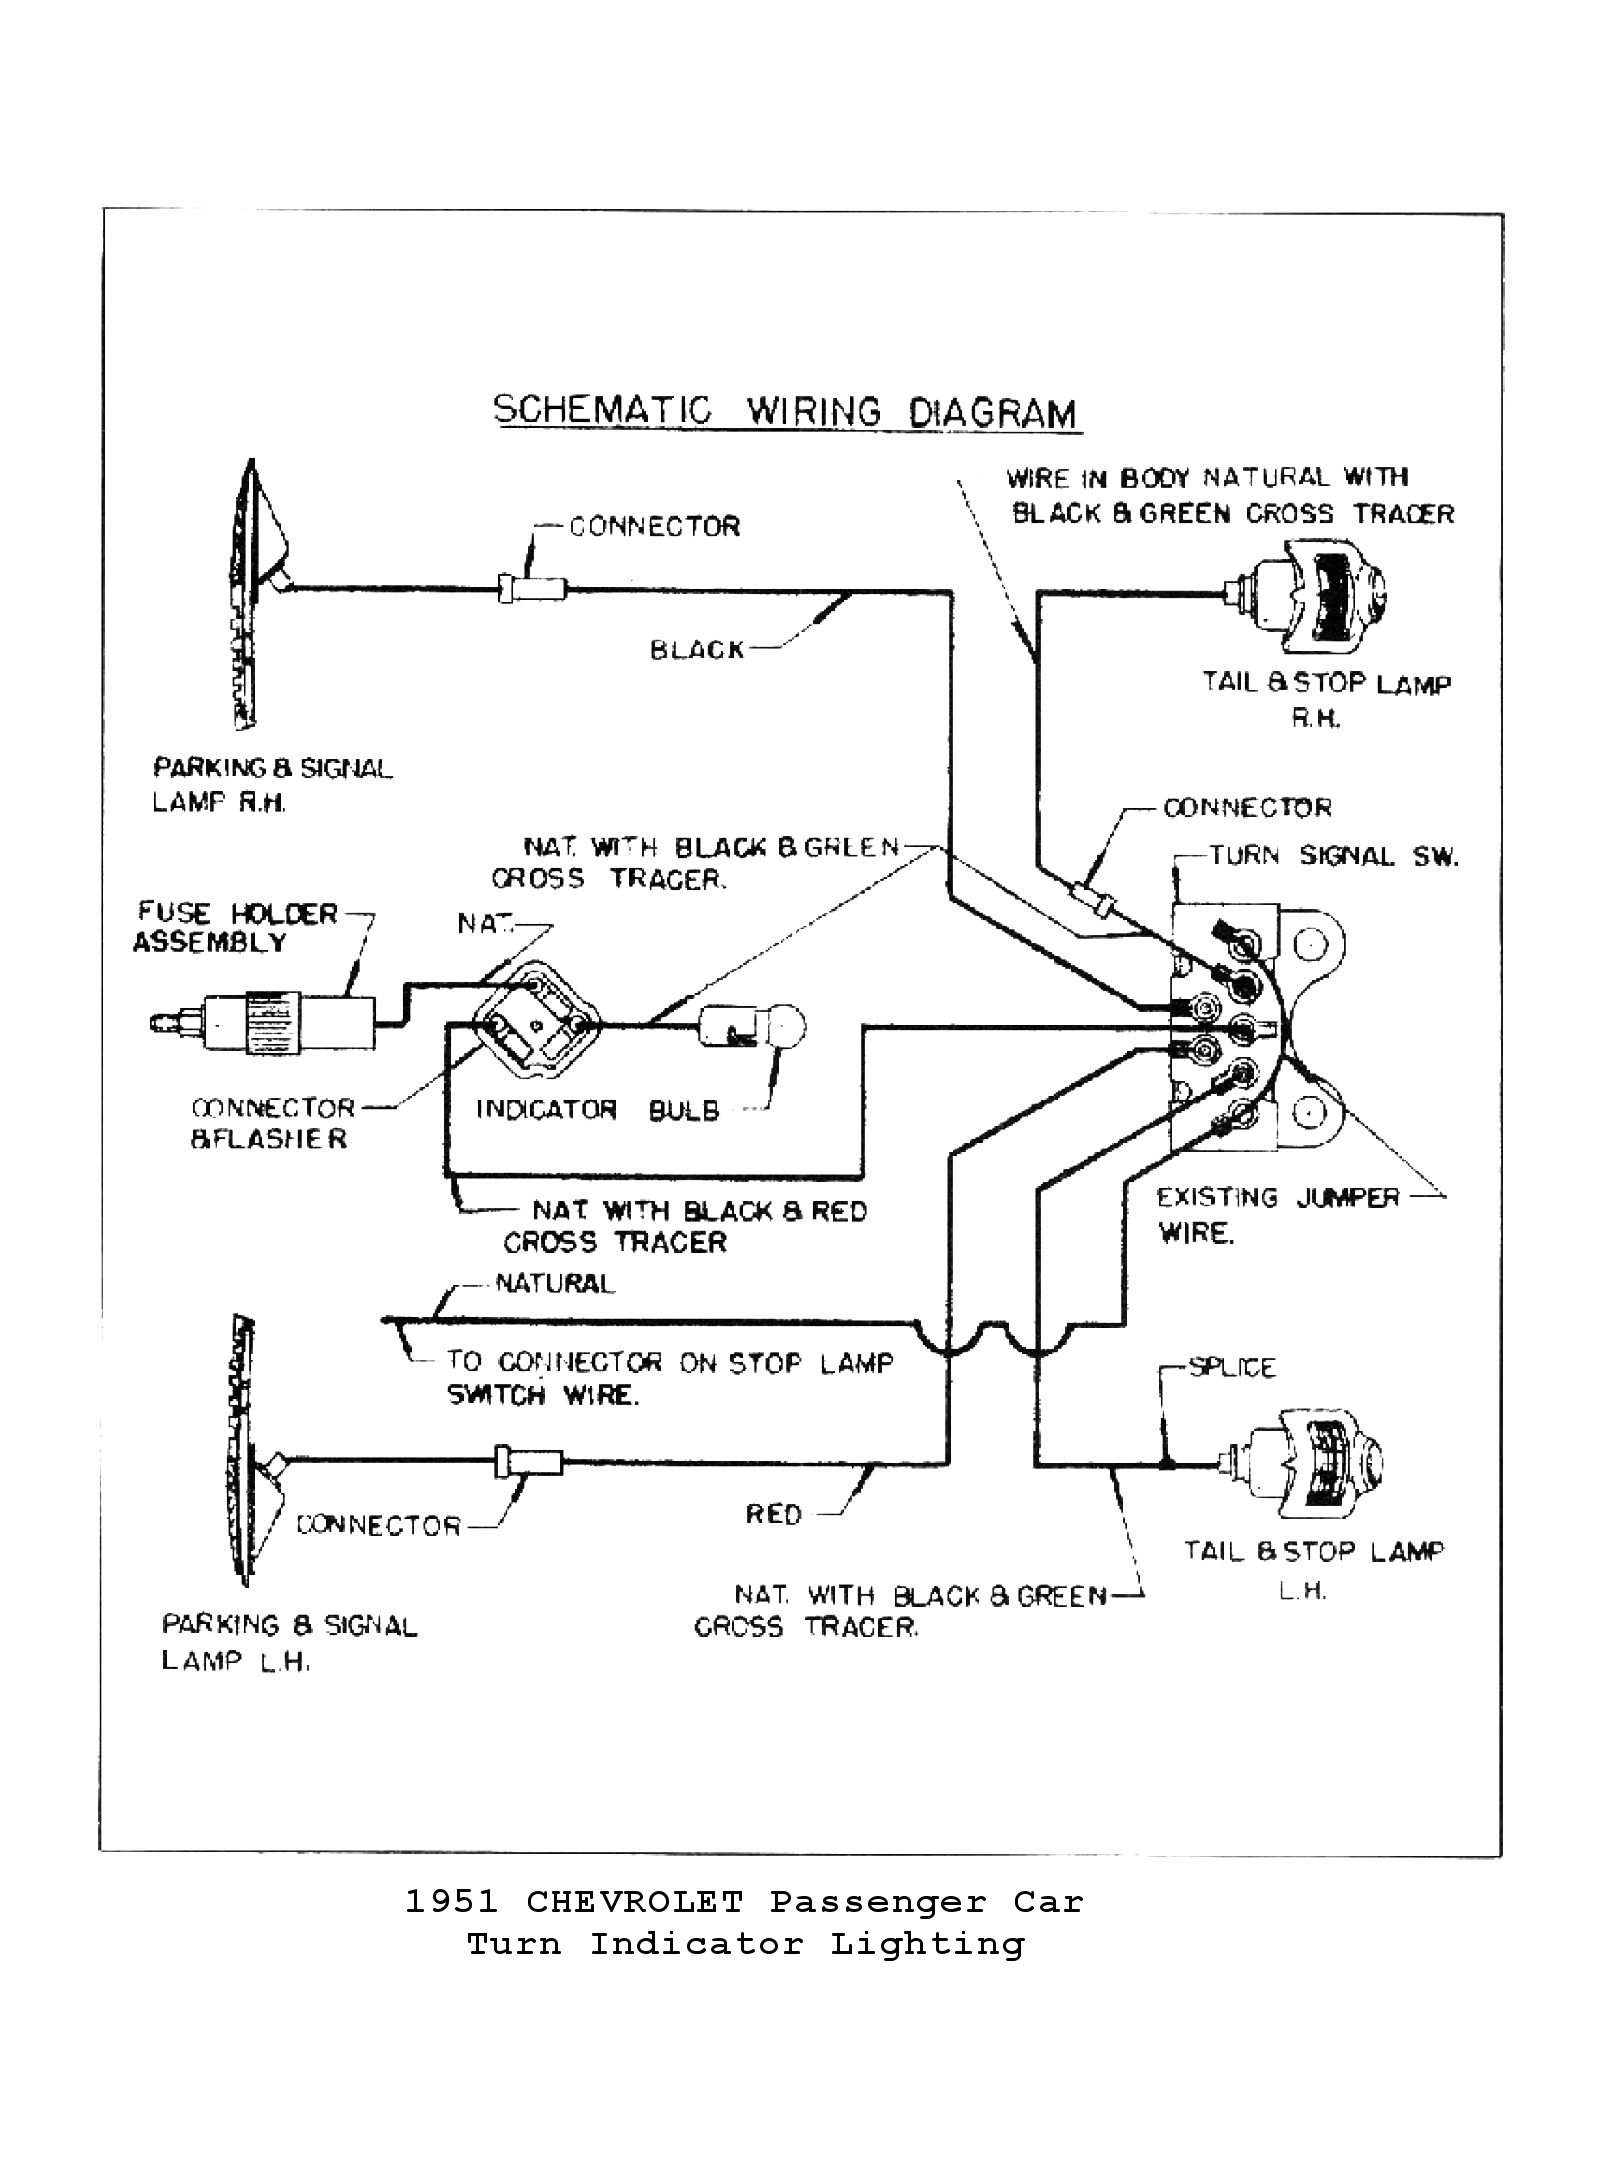 chevy wiring diagrams 1951 Chevy Styleline Deluxe Wiring chevy parts wiring harness, main